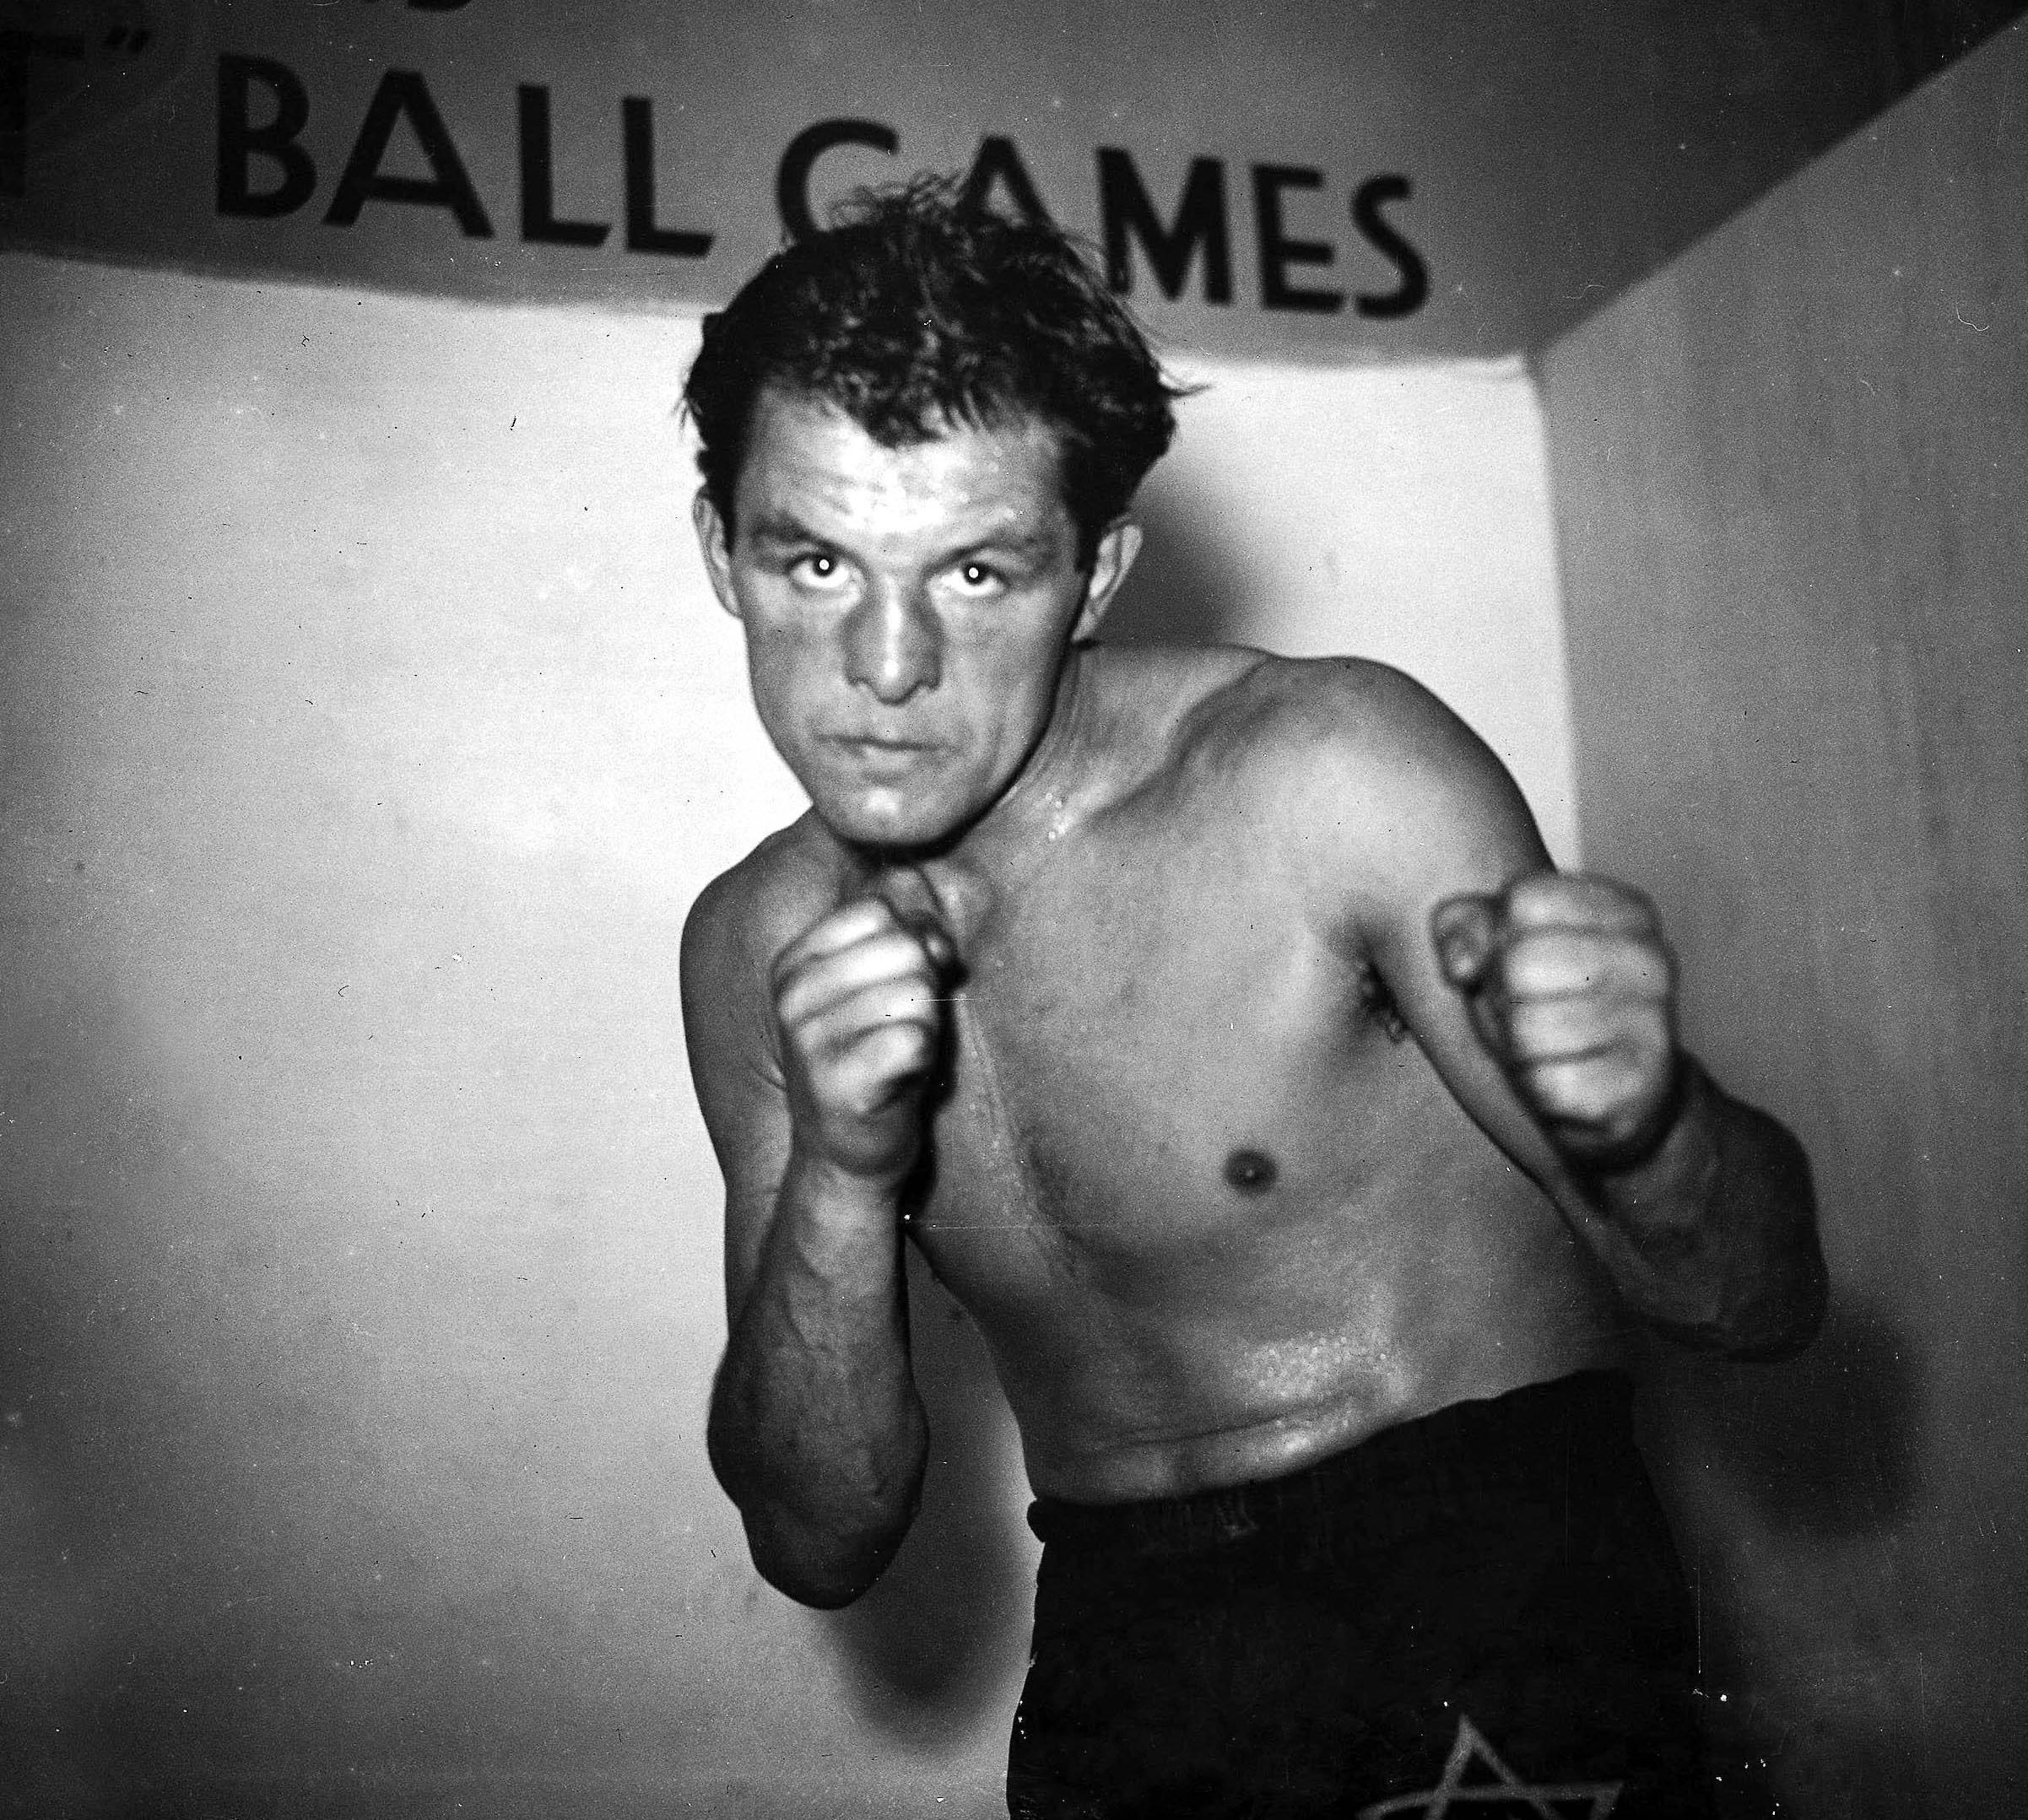 Jack Kid Berg, the former world junior welterweight champion, pictured in Whitechapel, had a childhood akin to a Dickens novel